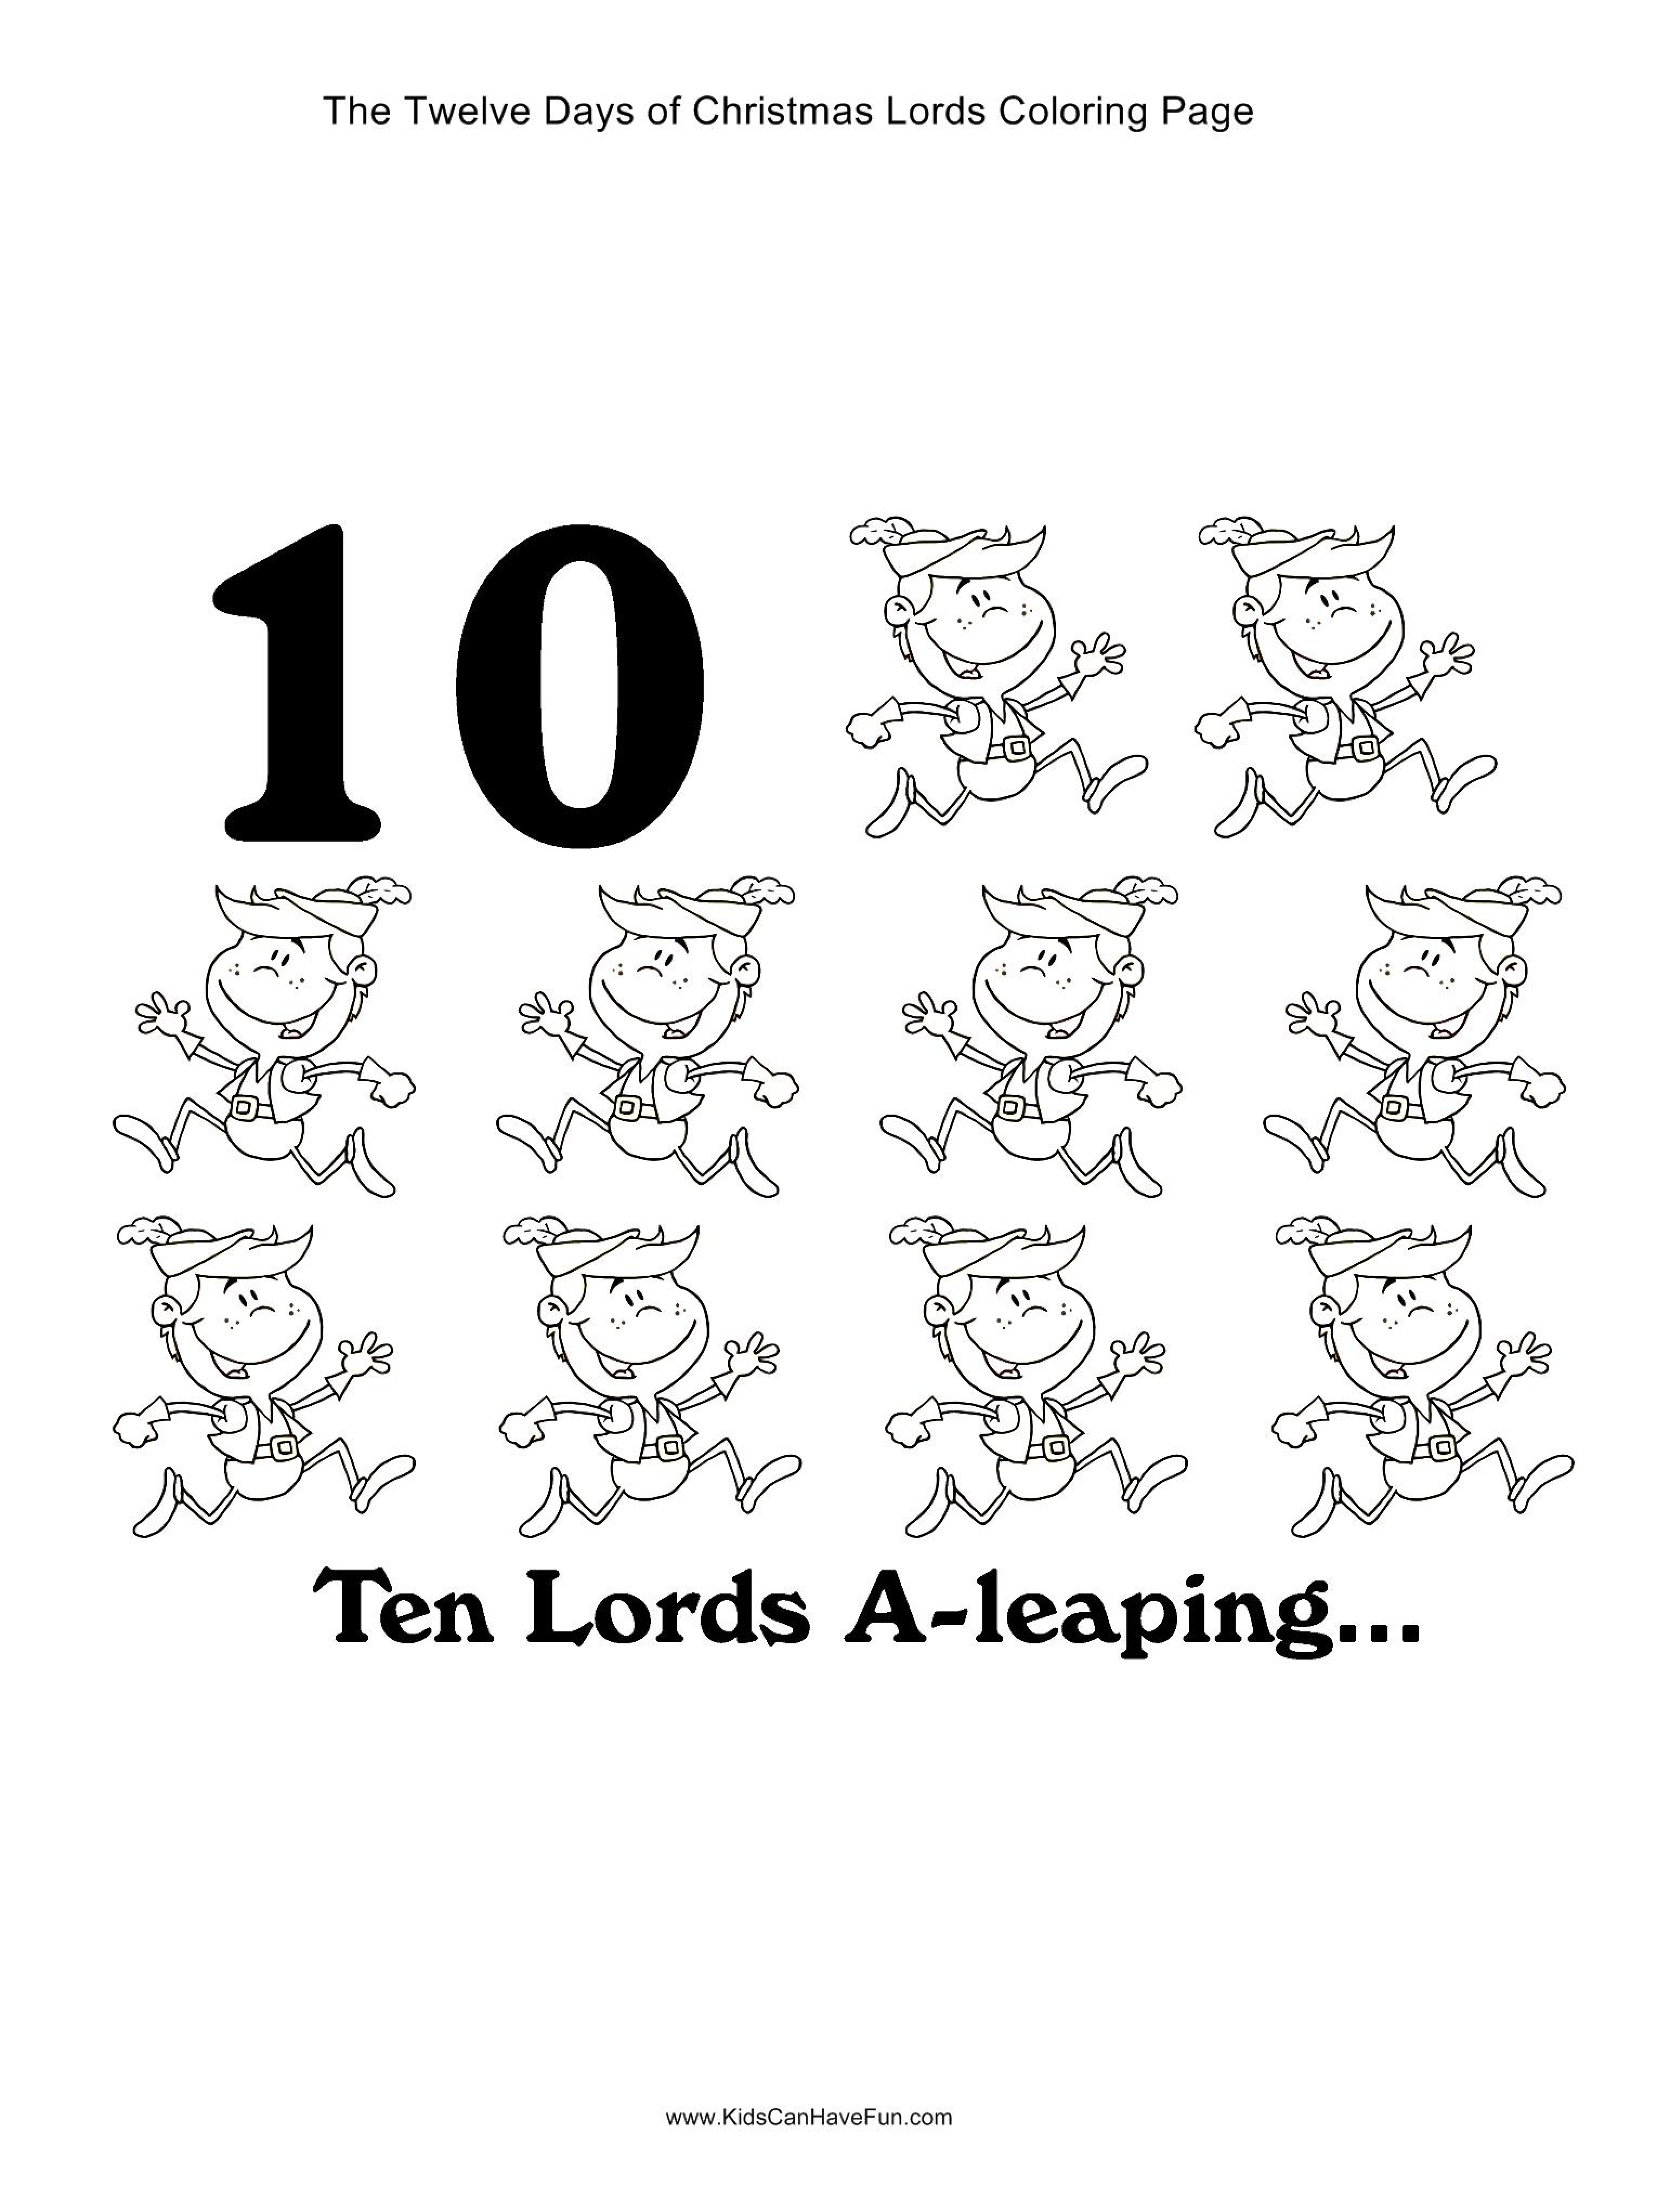 12 days of christmas ten lords a leaping coloring page for 12 days of christmas coloring page